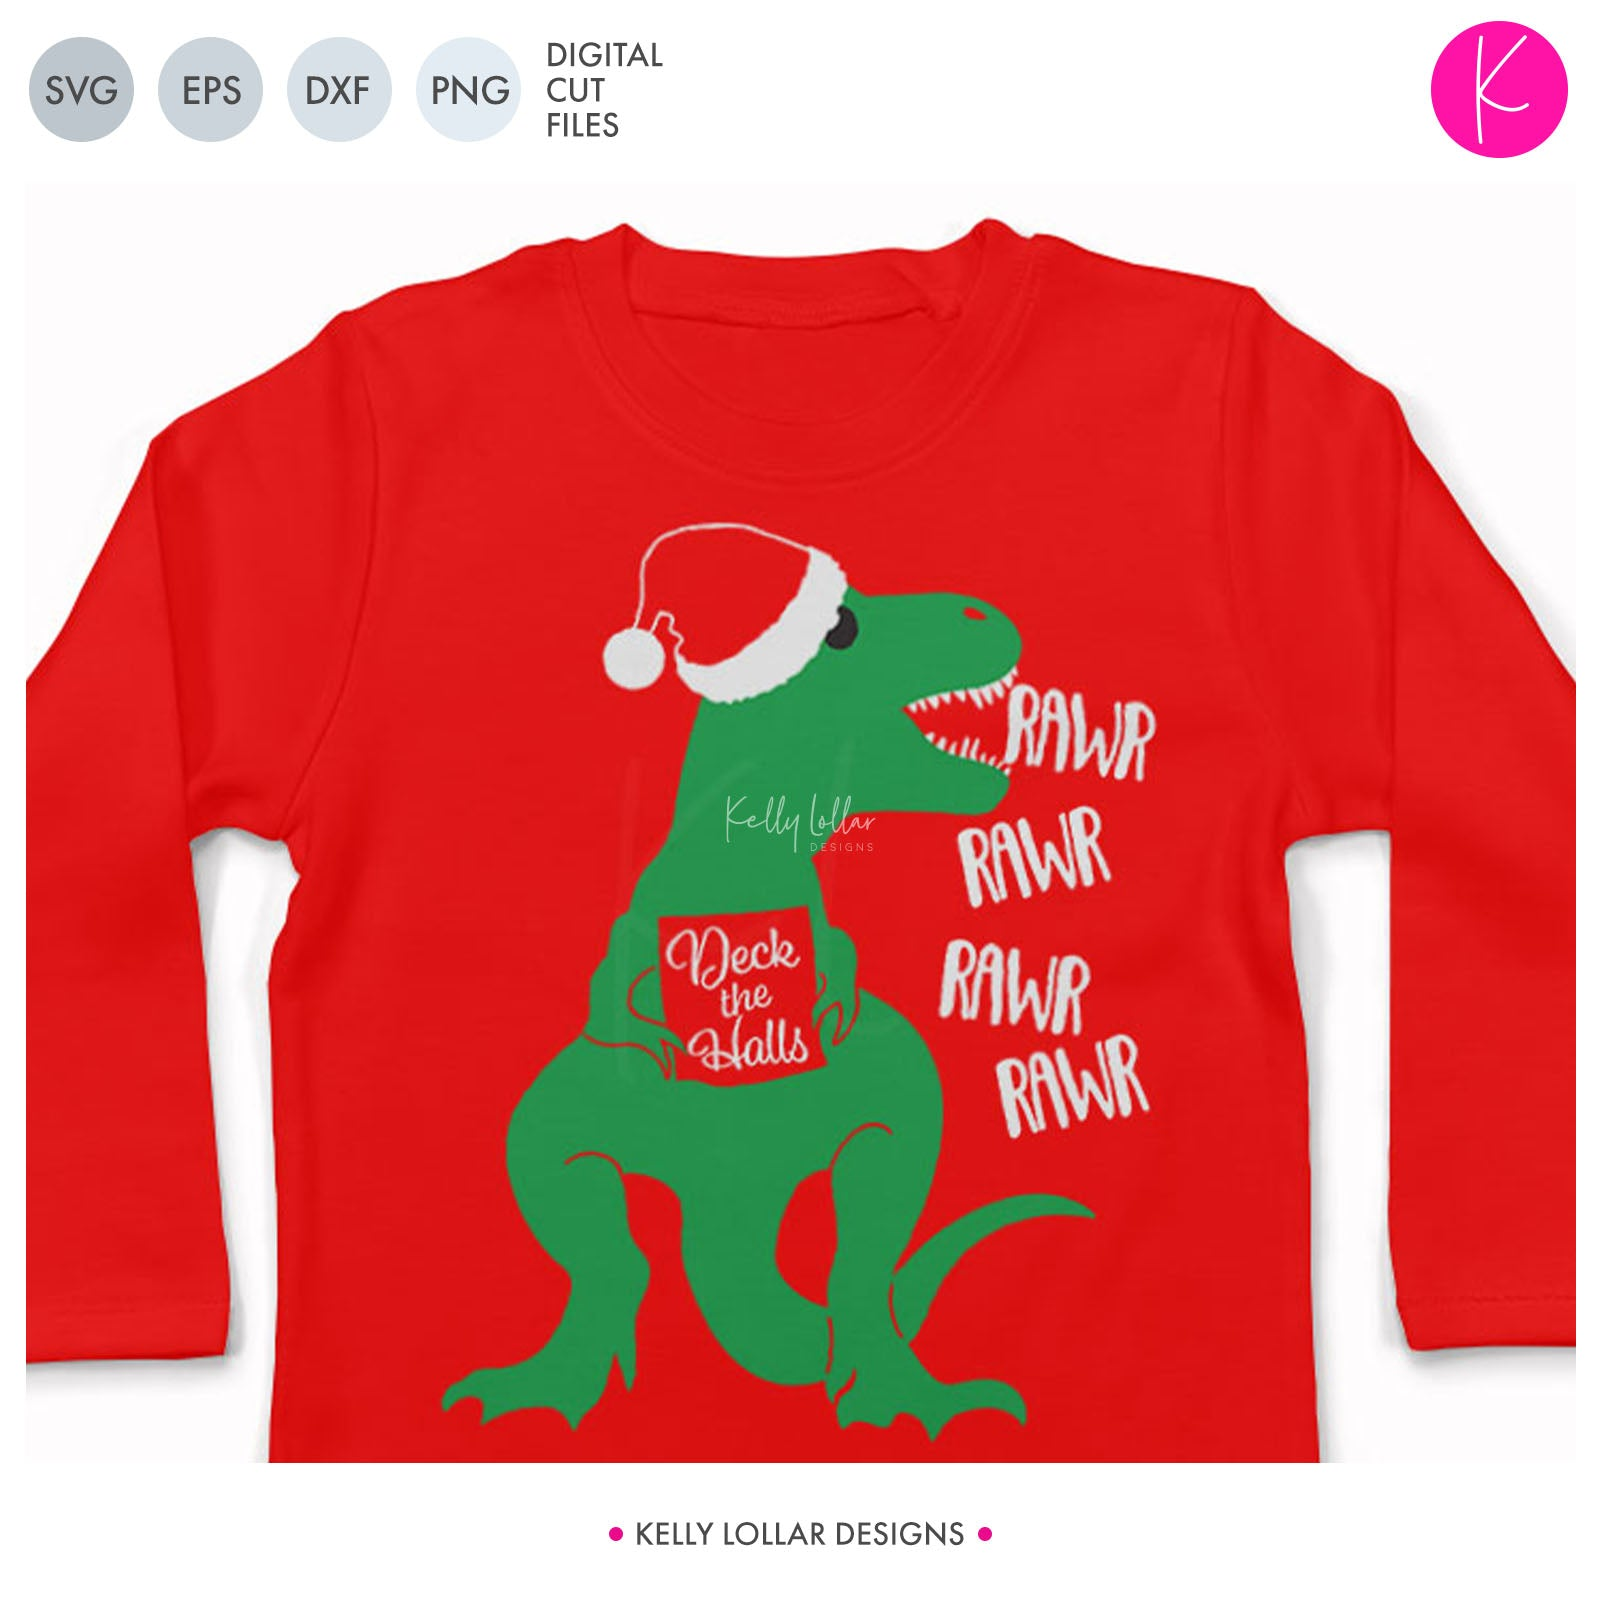 Caroling T-Rex | SVG DXF EPS PNG Cut Files Dinosaur with Santa Hat Singing Deck the Halls for Children's Christmas Shirts | SVG DXF PNG Cut Files 2 files for each format solid hat version knockout hat to use